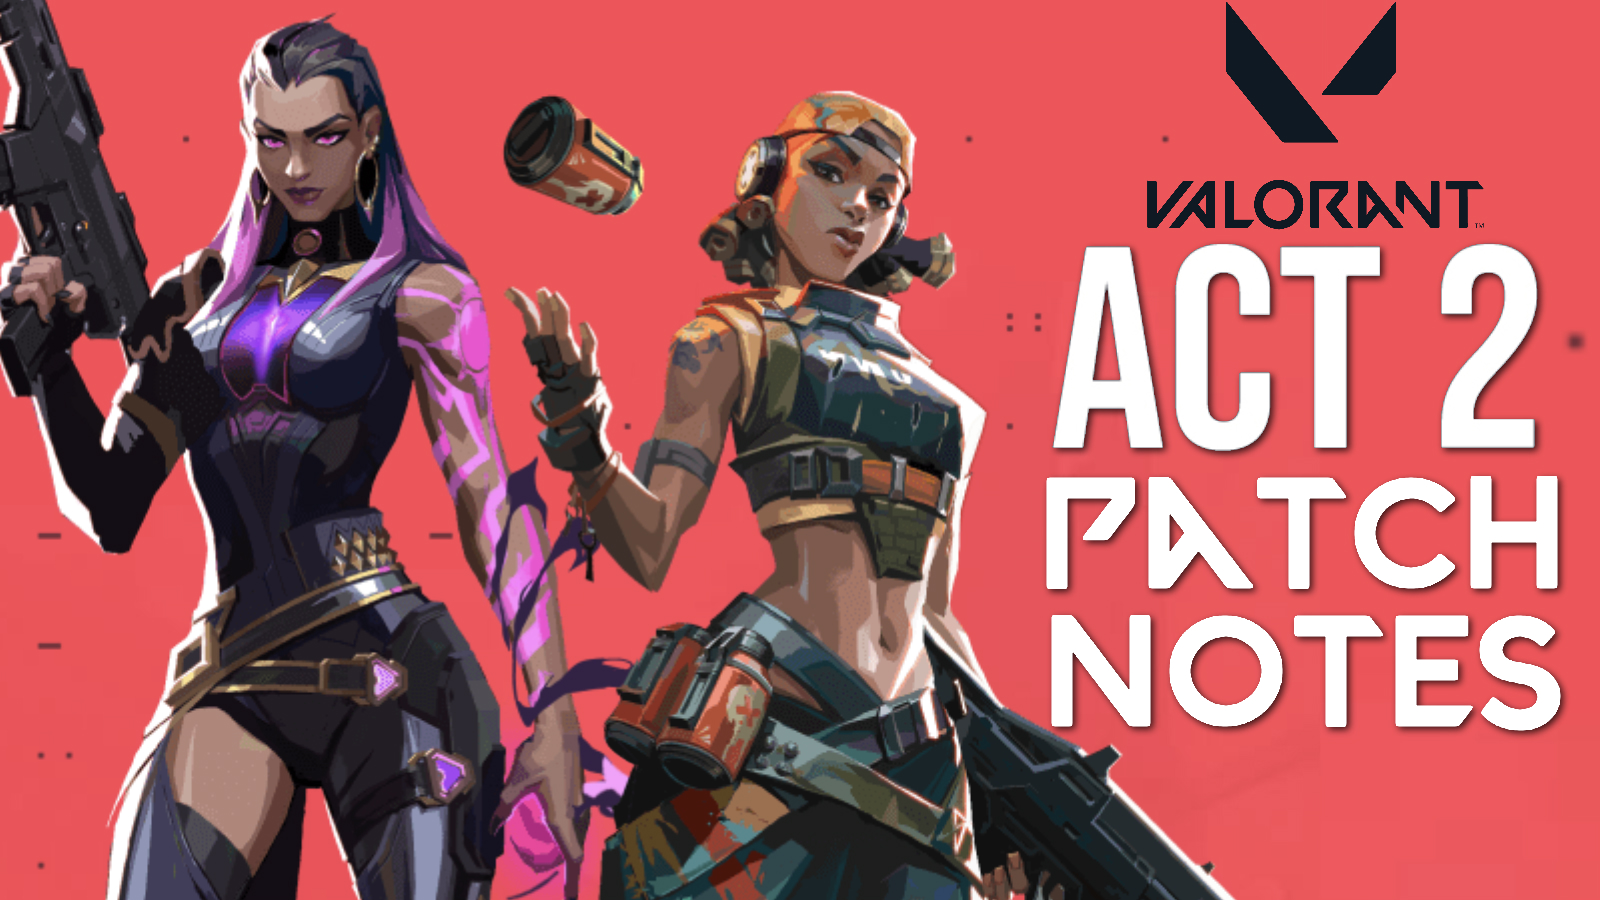 Reyna and Raze with Valorant act 2 patch notes